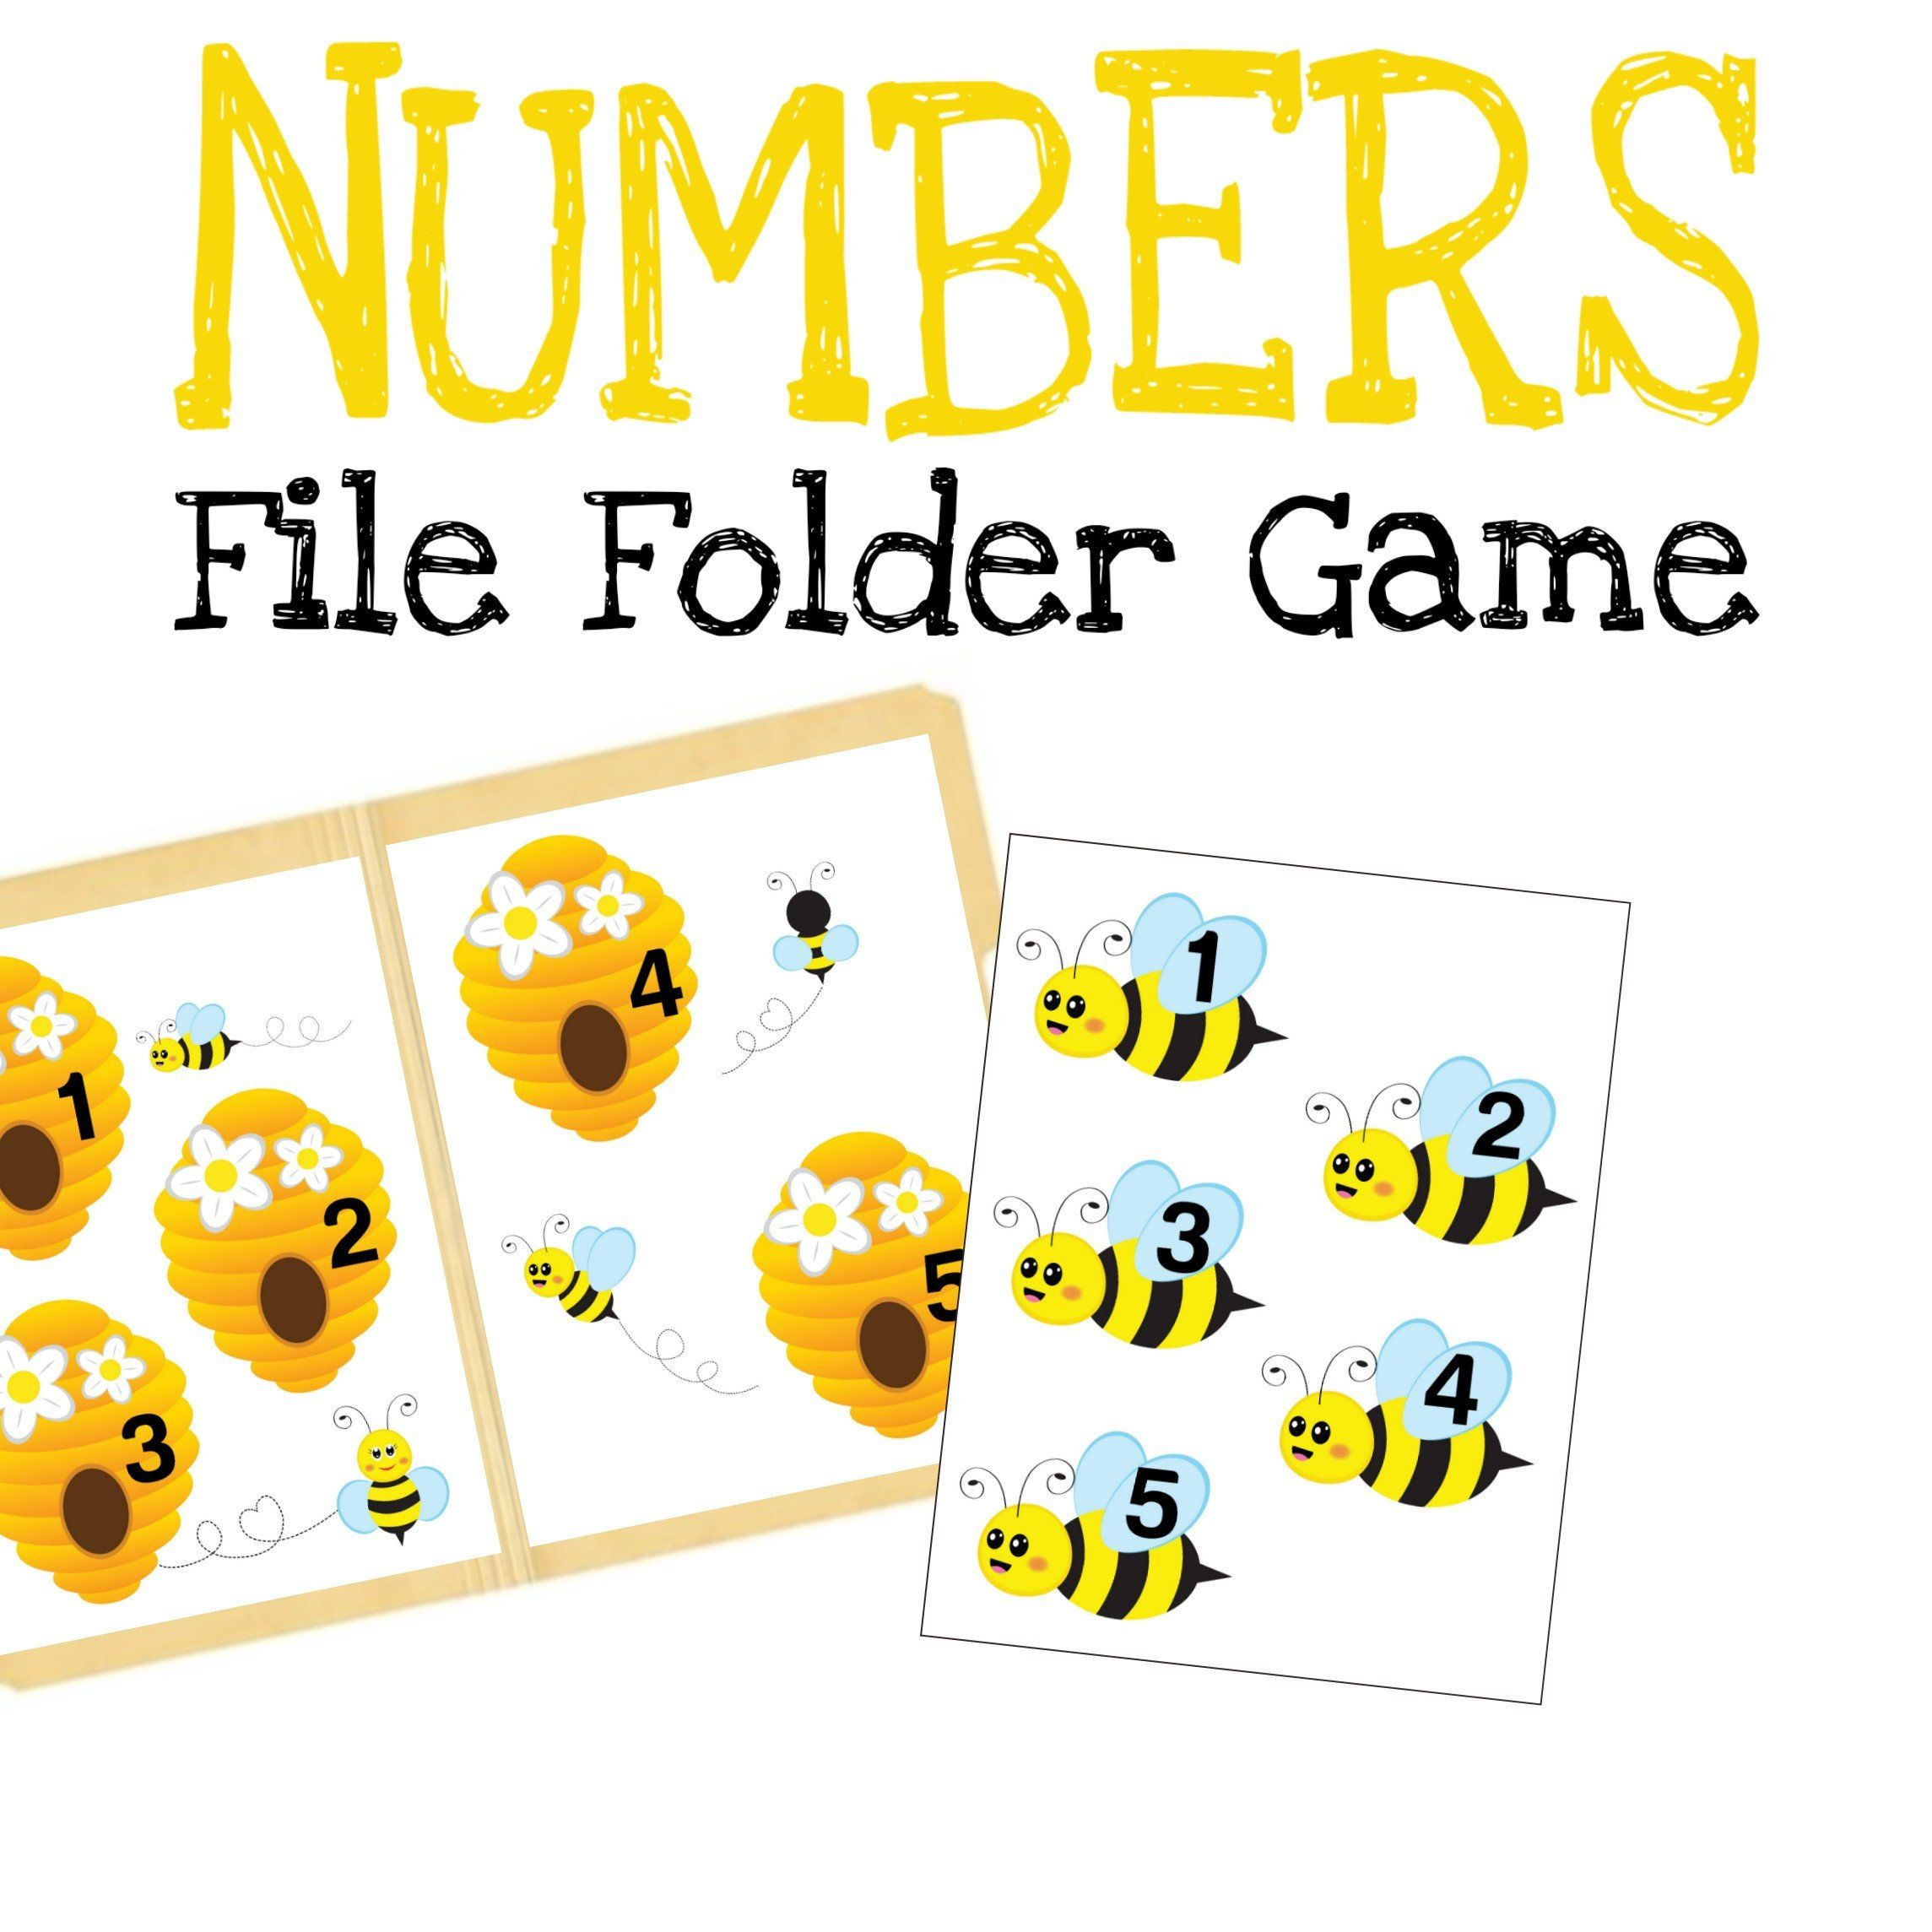 Bees File Folder Games Quiet Book Busy Book Learning